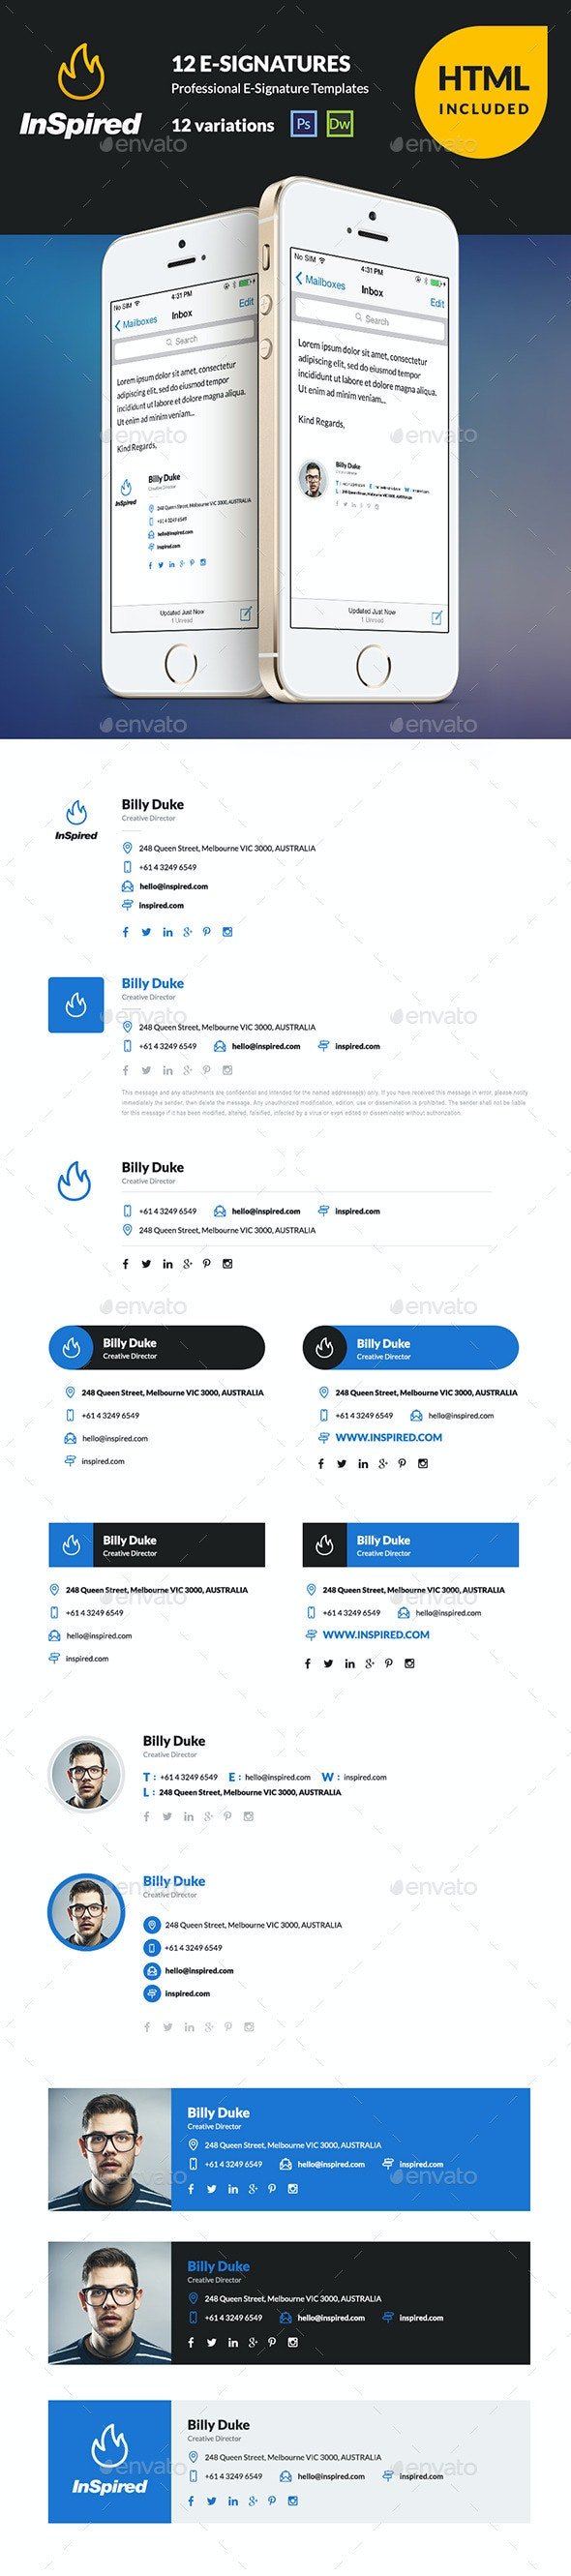 InSpired 12 HTML Professional E-Signatures - Miscellaneous Web Elements